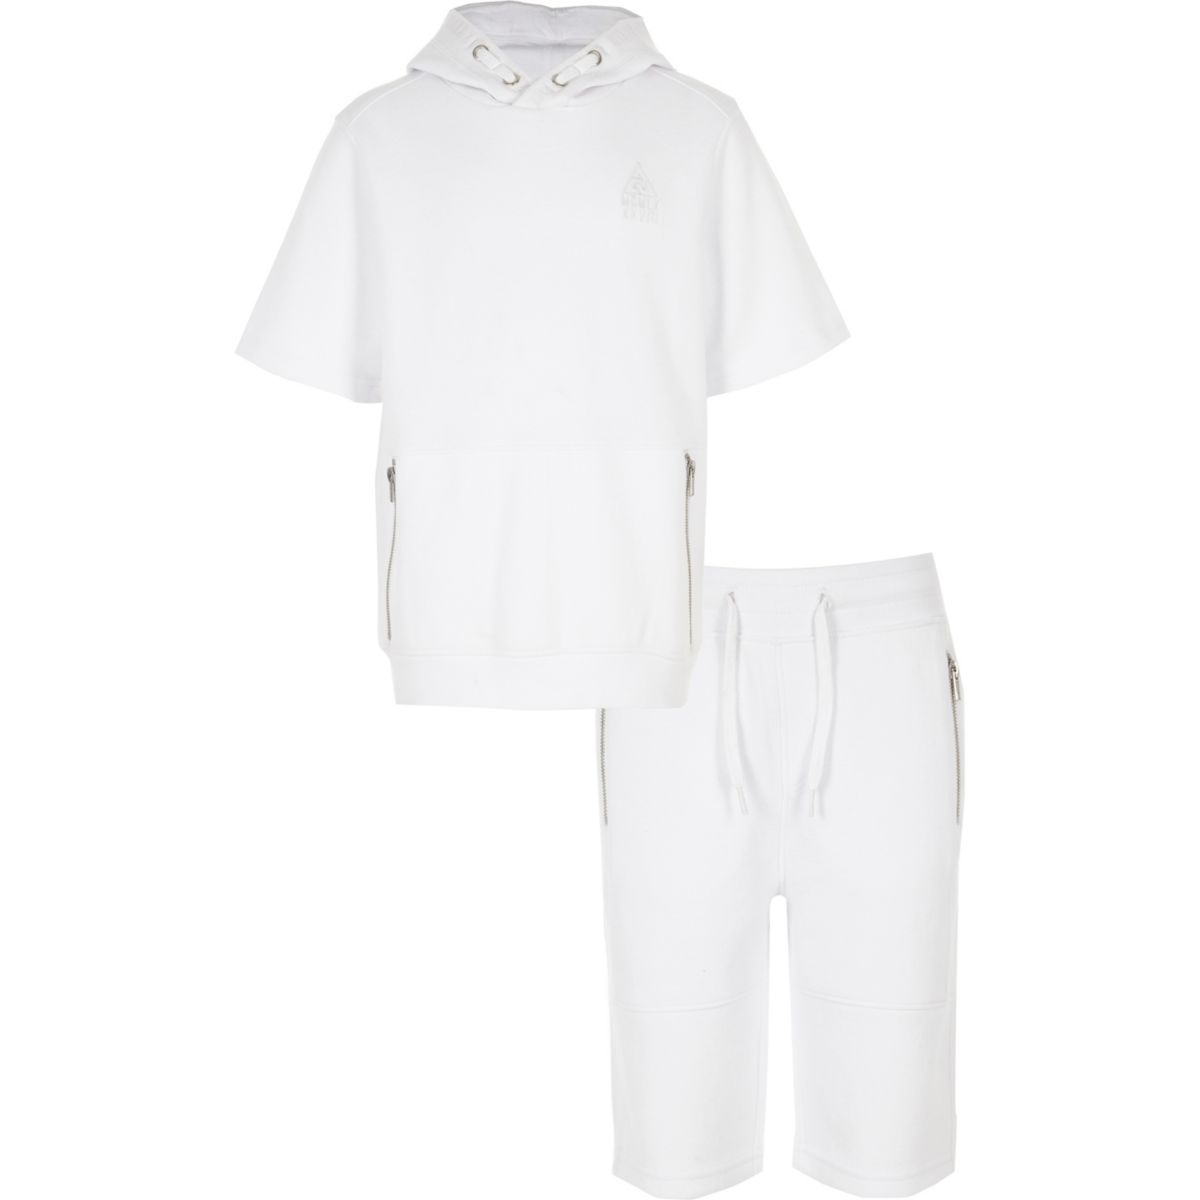 Boys white hoodie and shorts outfit